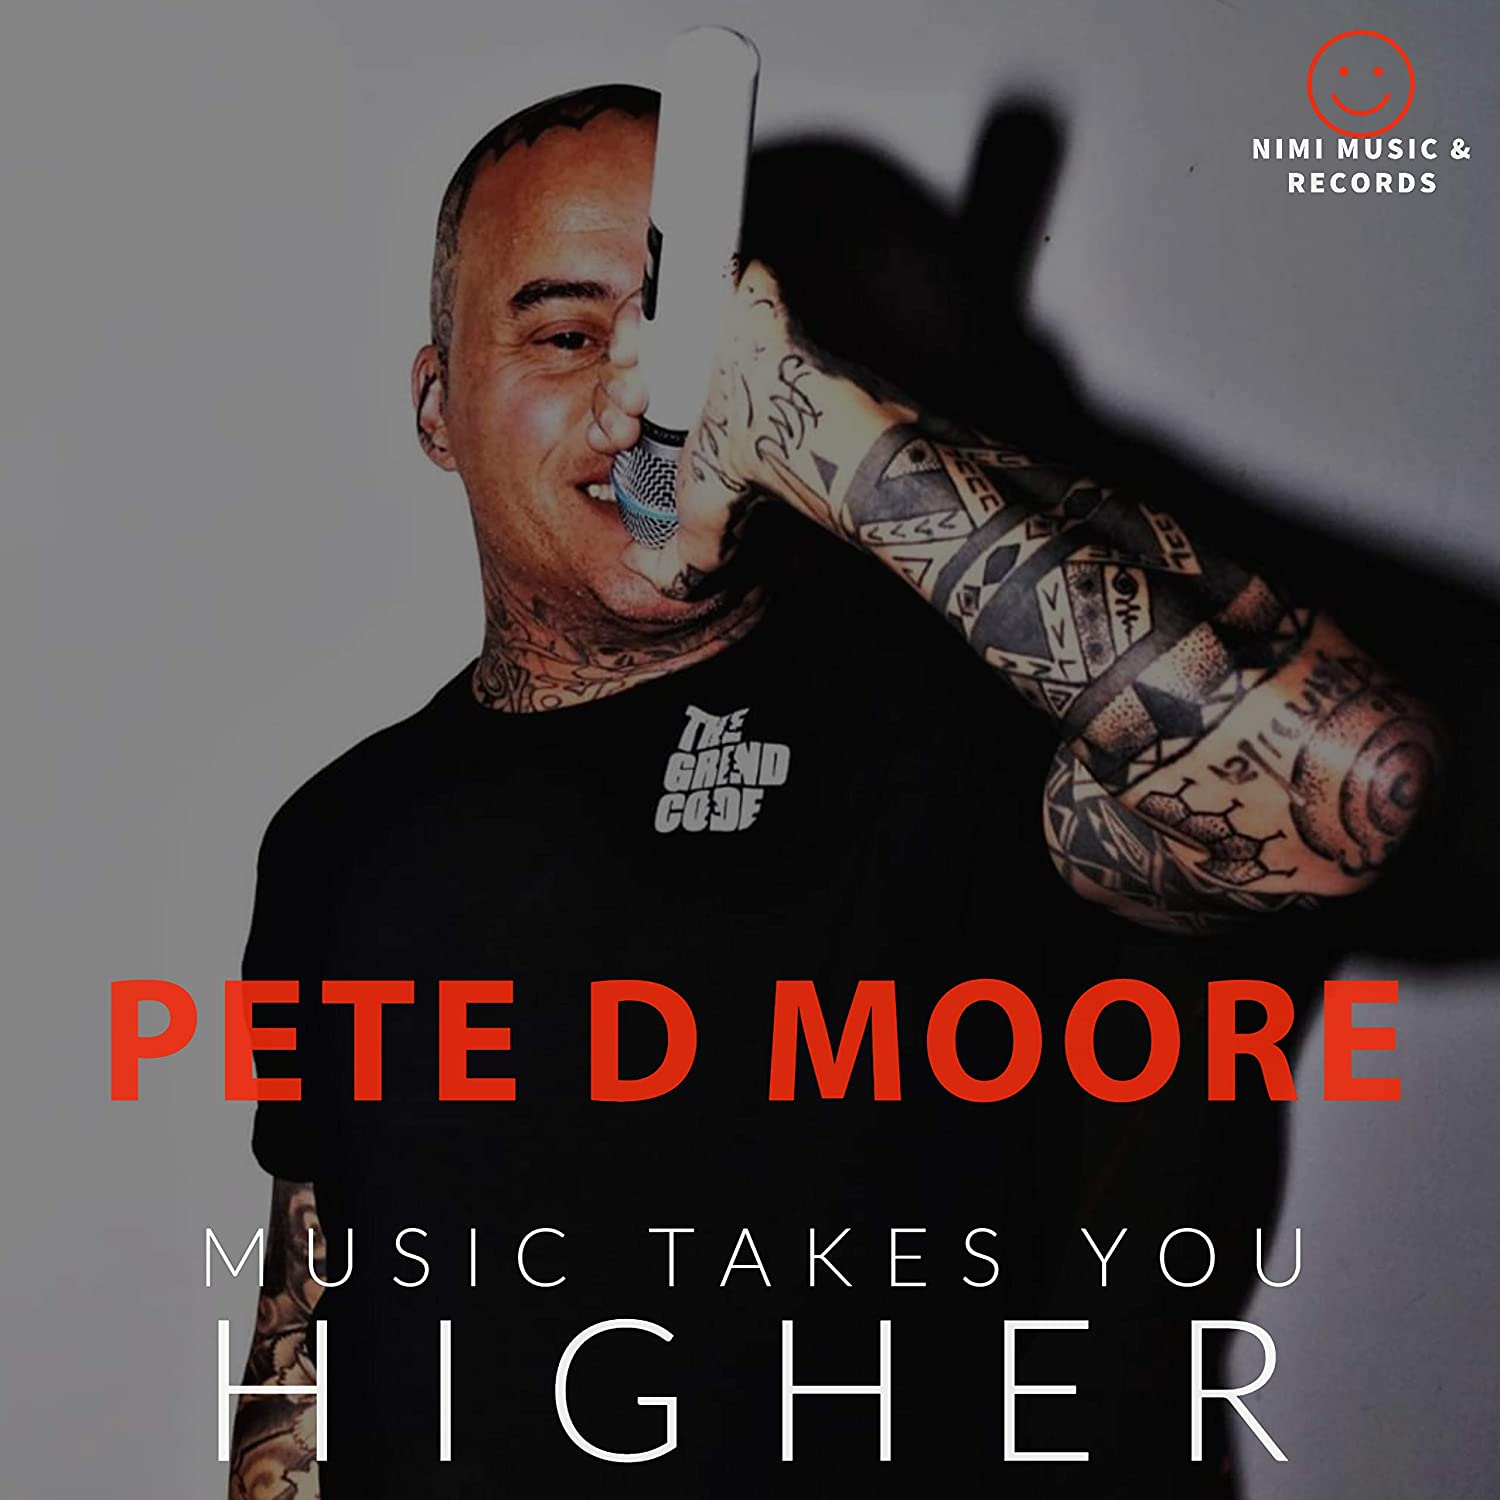 Pete D Moore released version of Music Takes You Higher